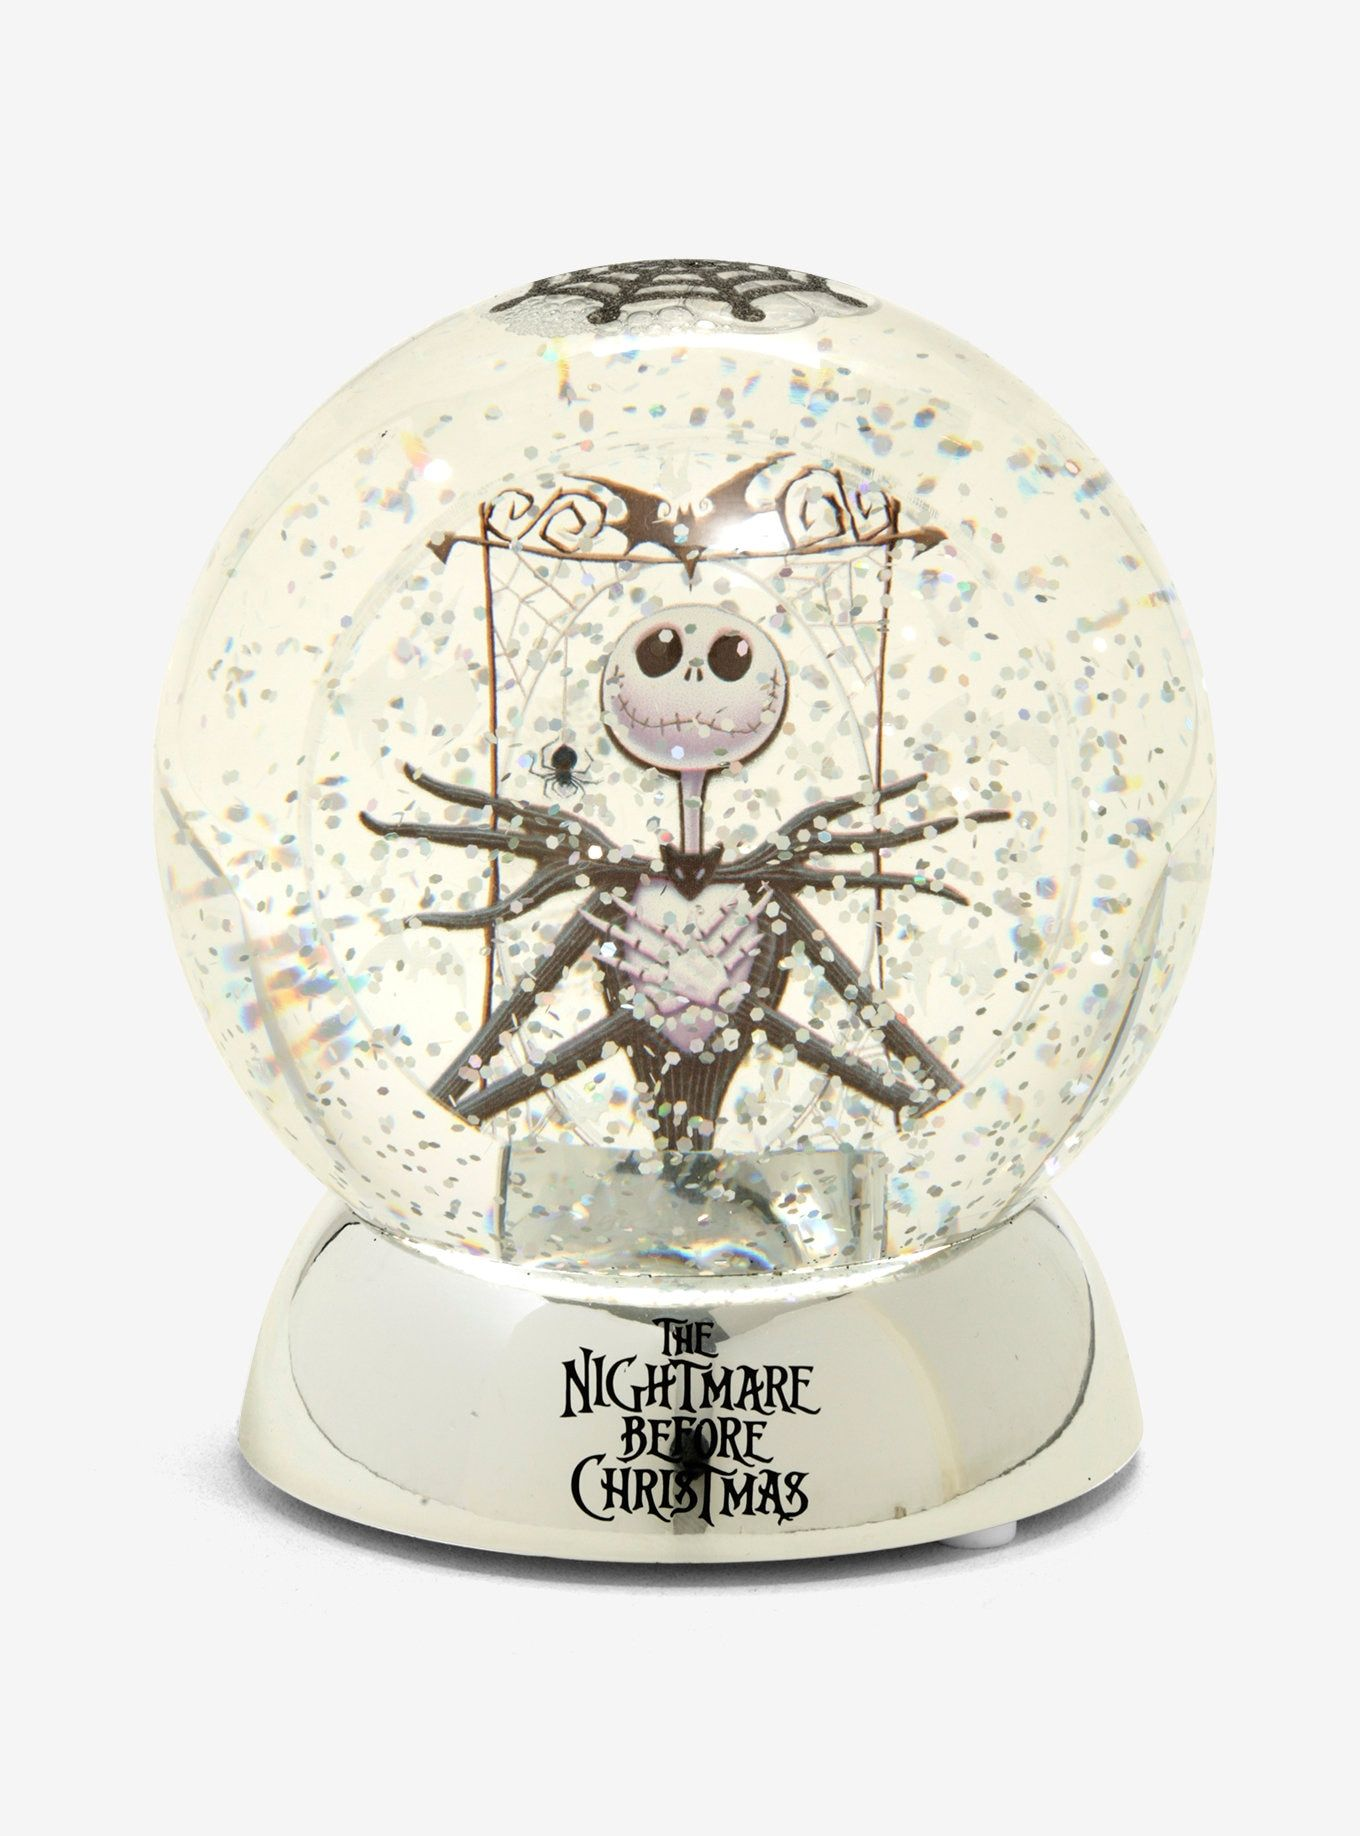 The Nightmare Before Christmas LightUp Water Globe